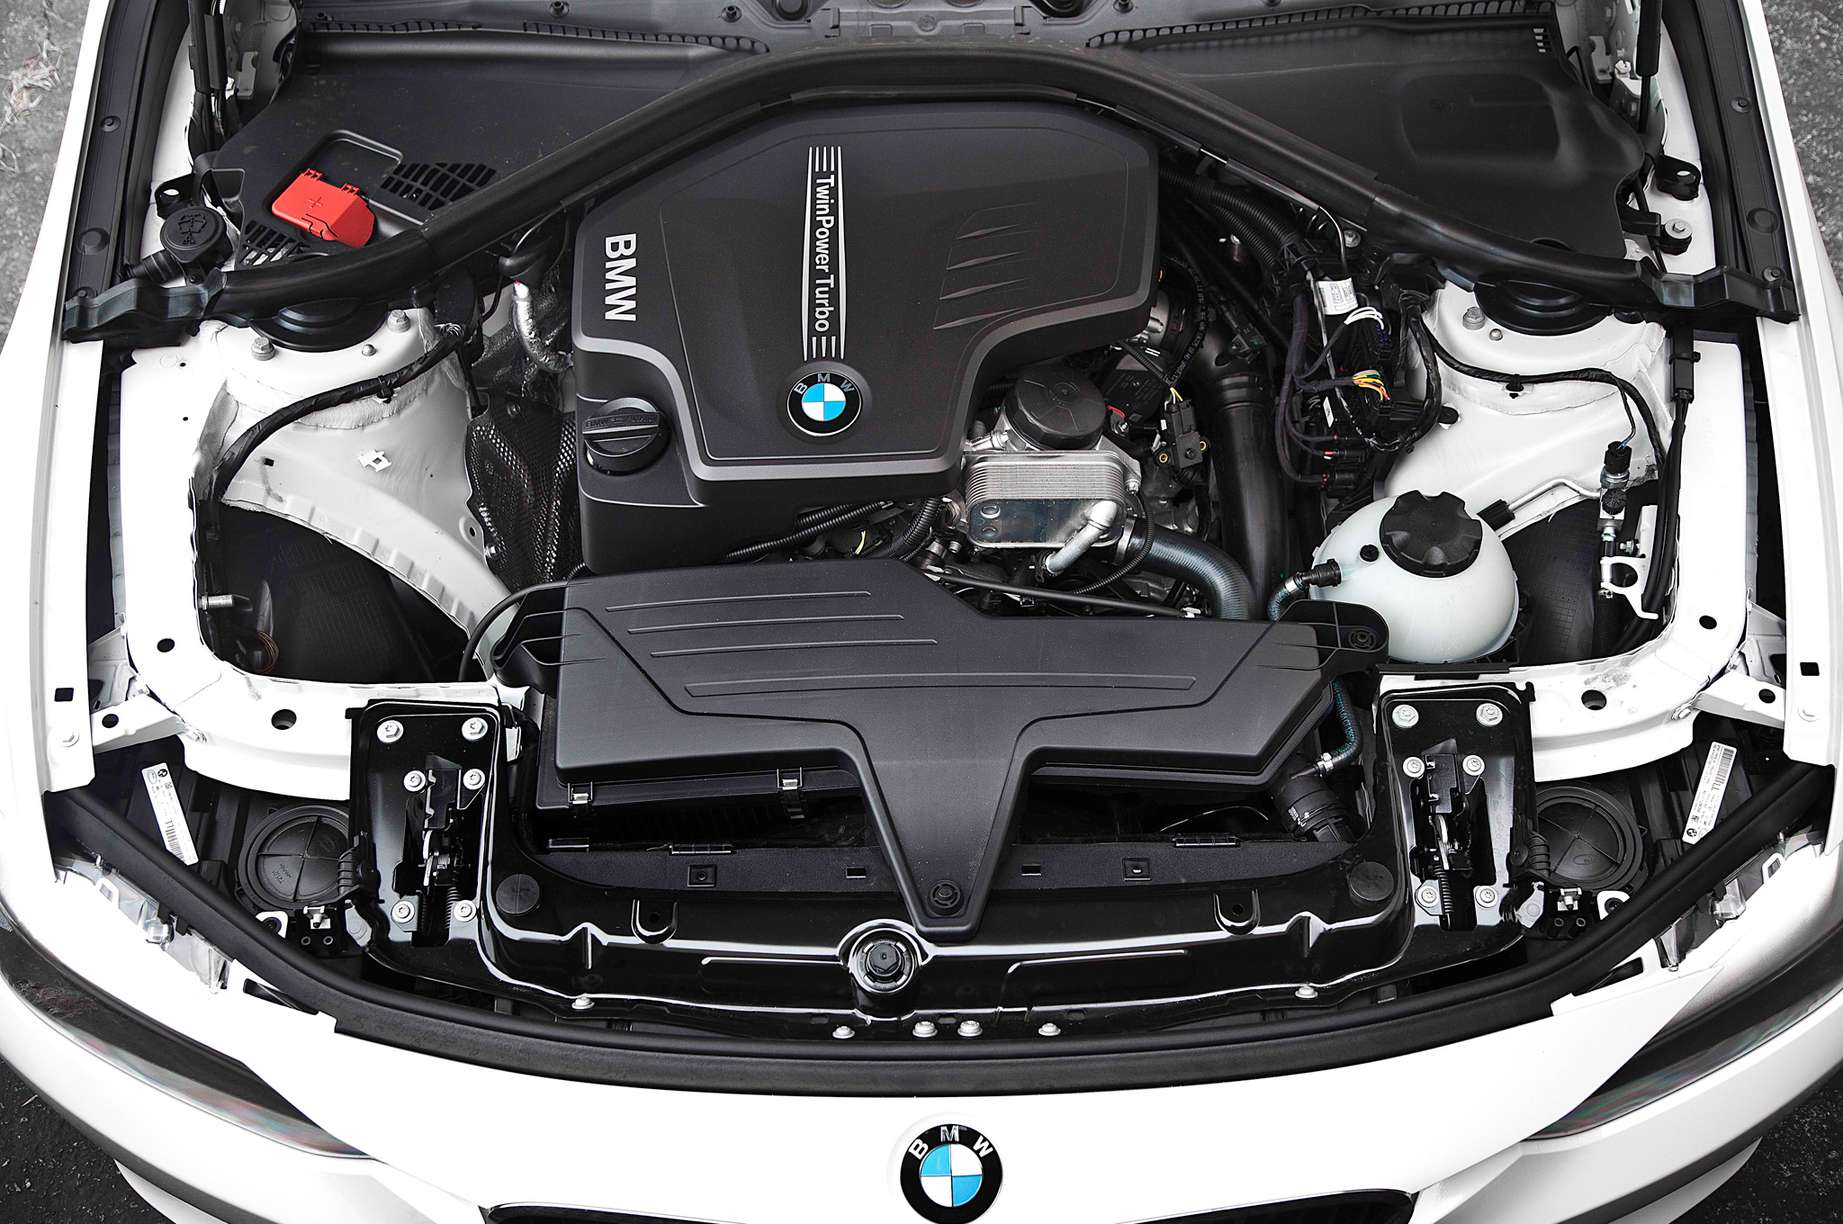 320i Bmw Engine